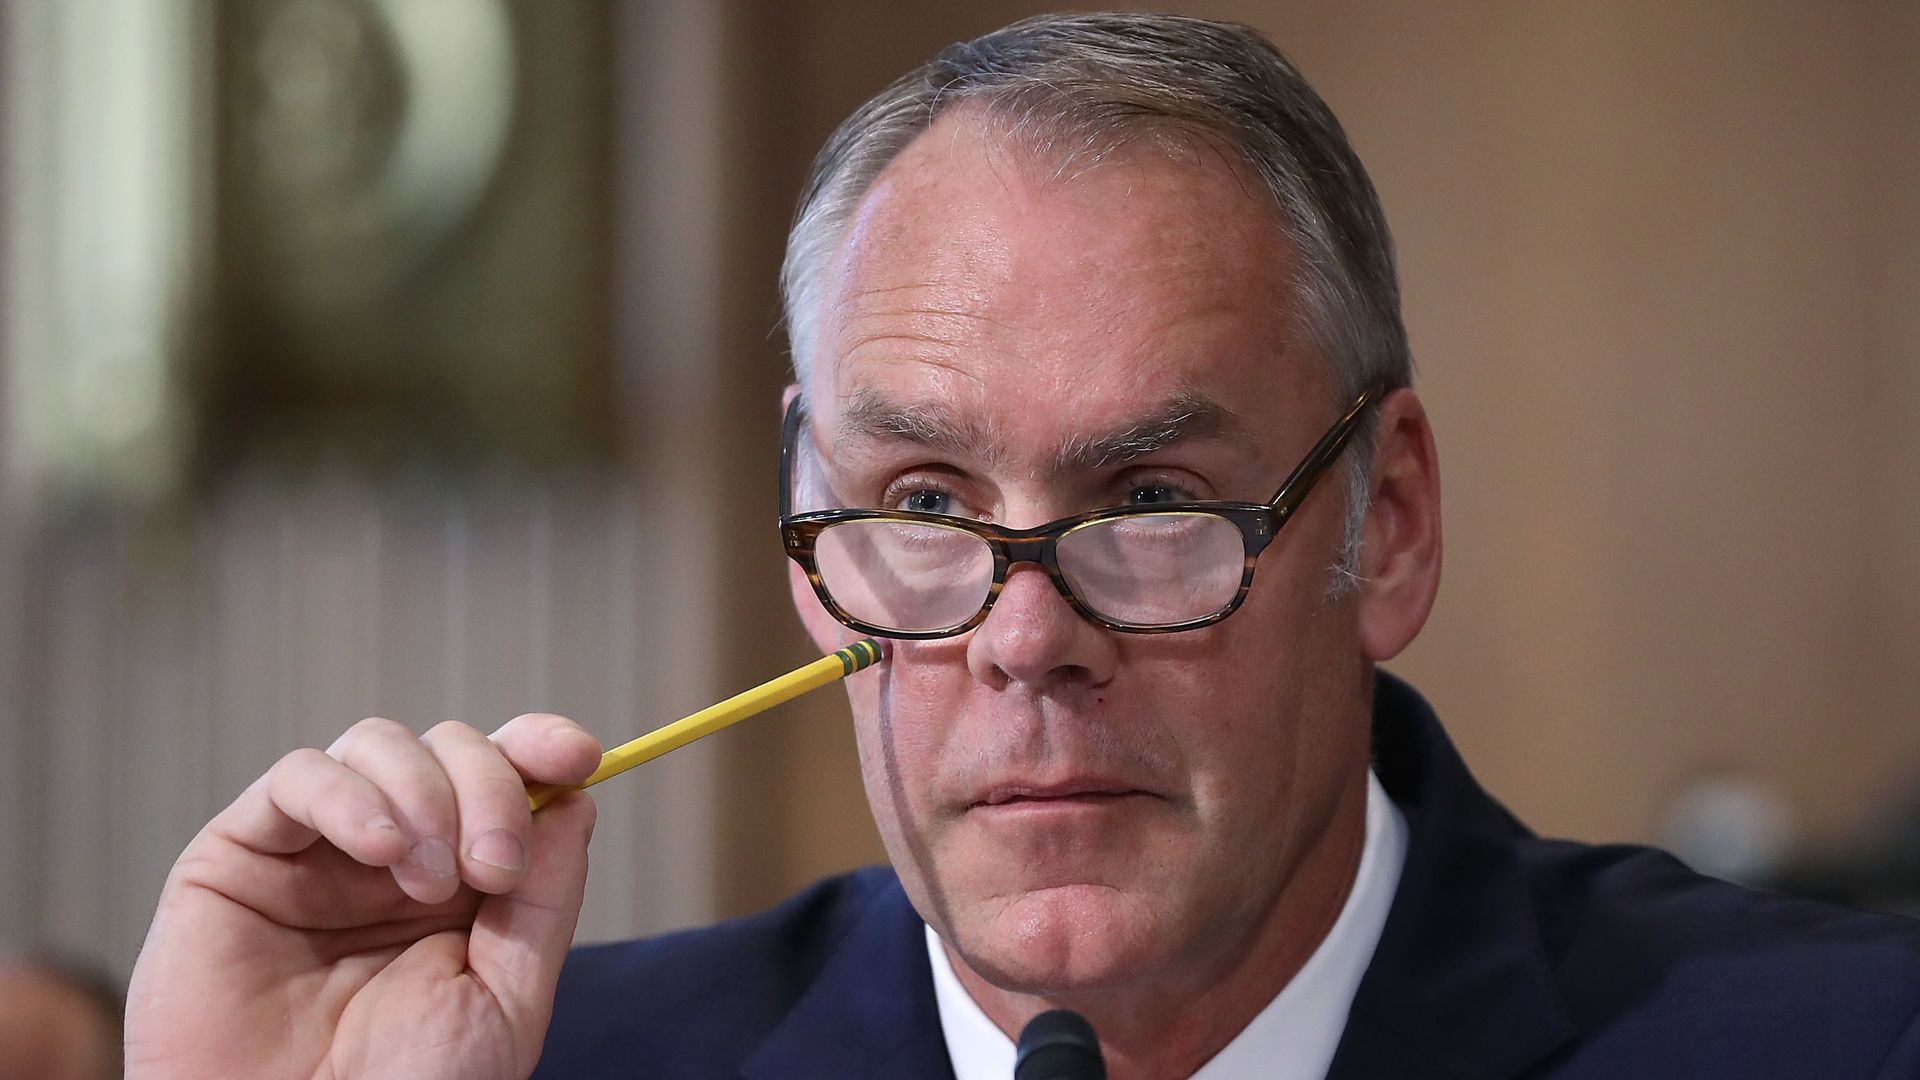 Interior Secretary Ryan Zinke listens to a question during a Senate Energy and Natural Resources Committee hearing on Capitol Hill.